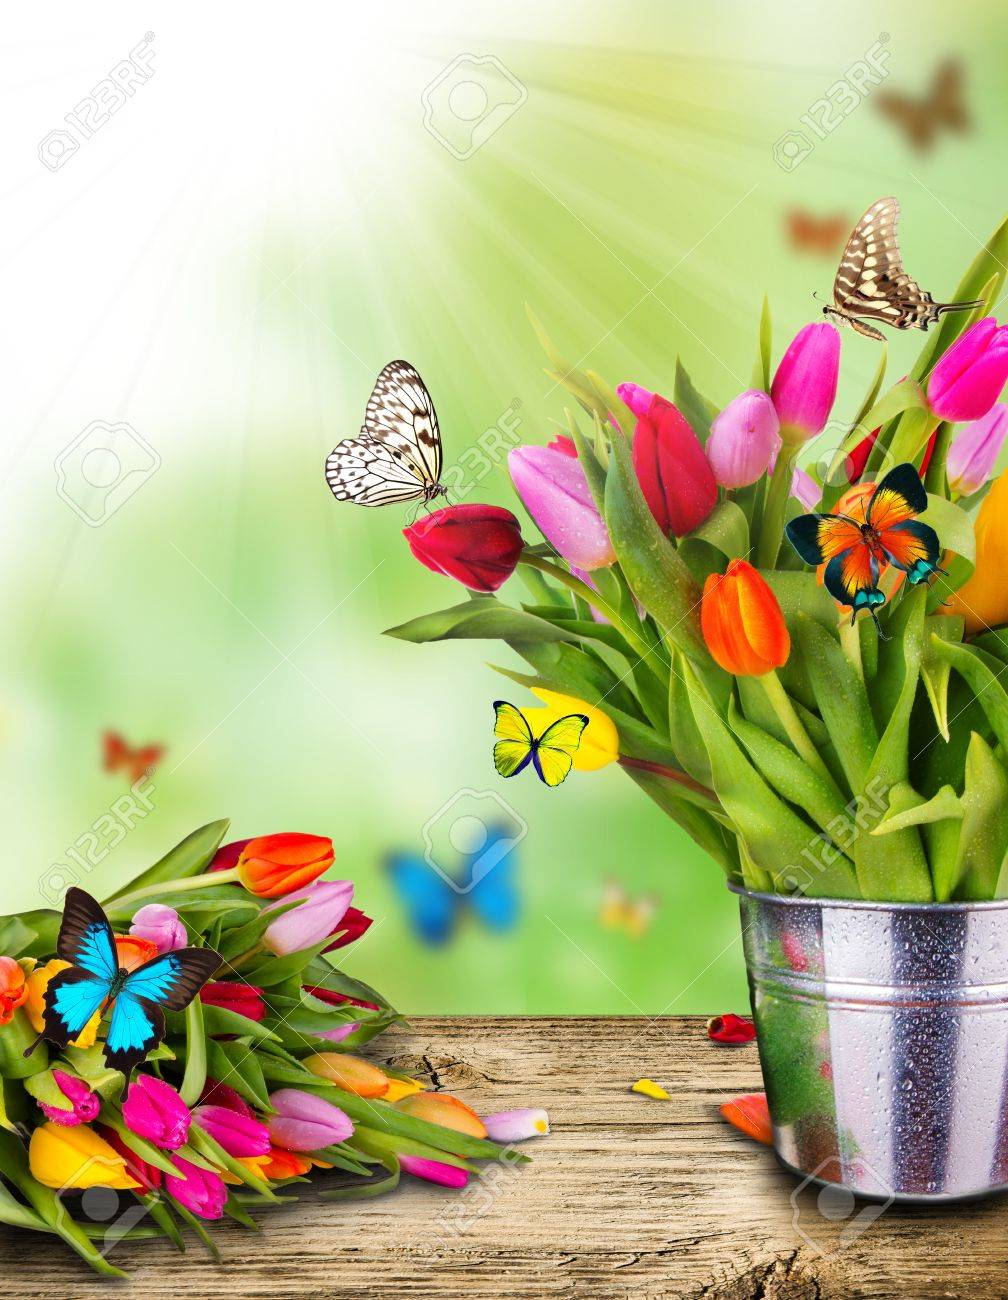 Colored tulips flowers with exotic butterflies Stock Photo - 13672324